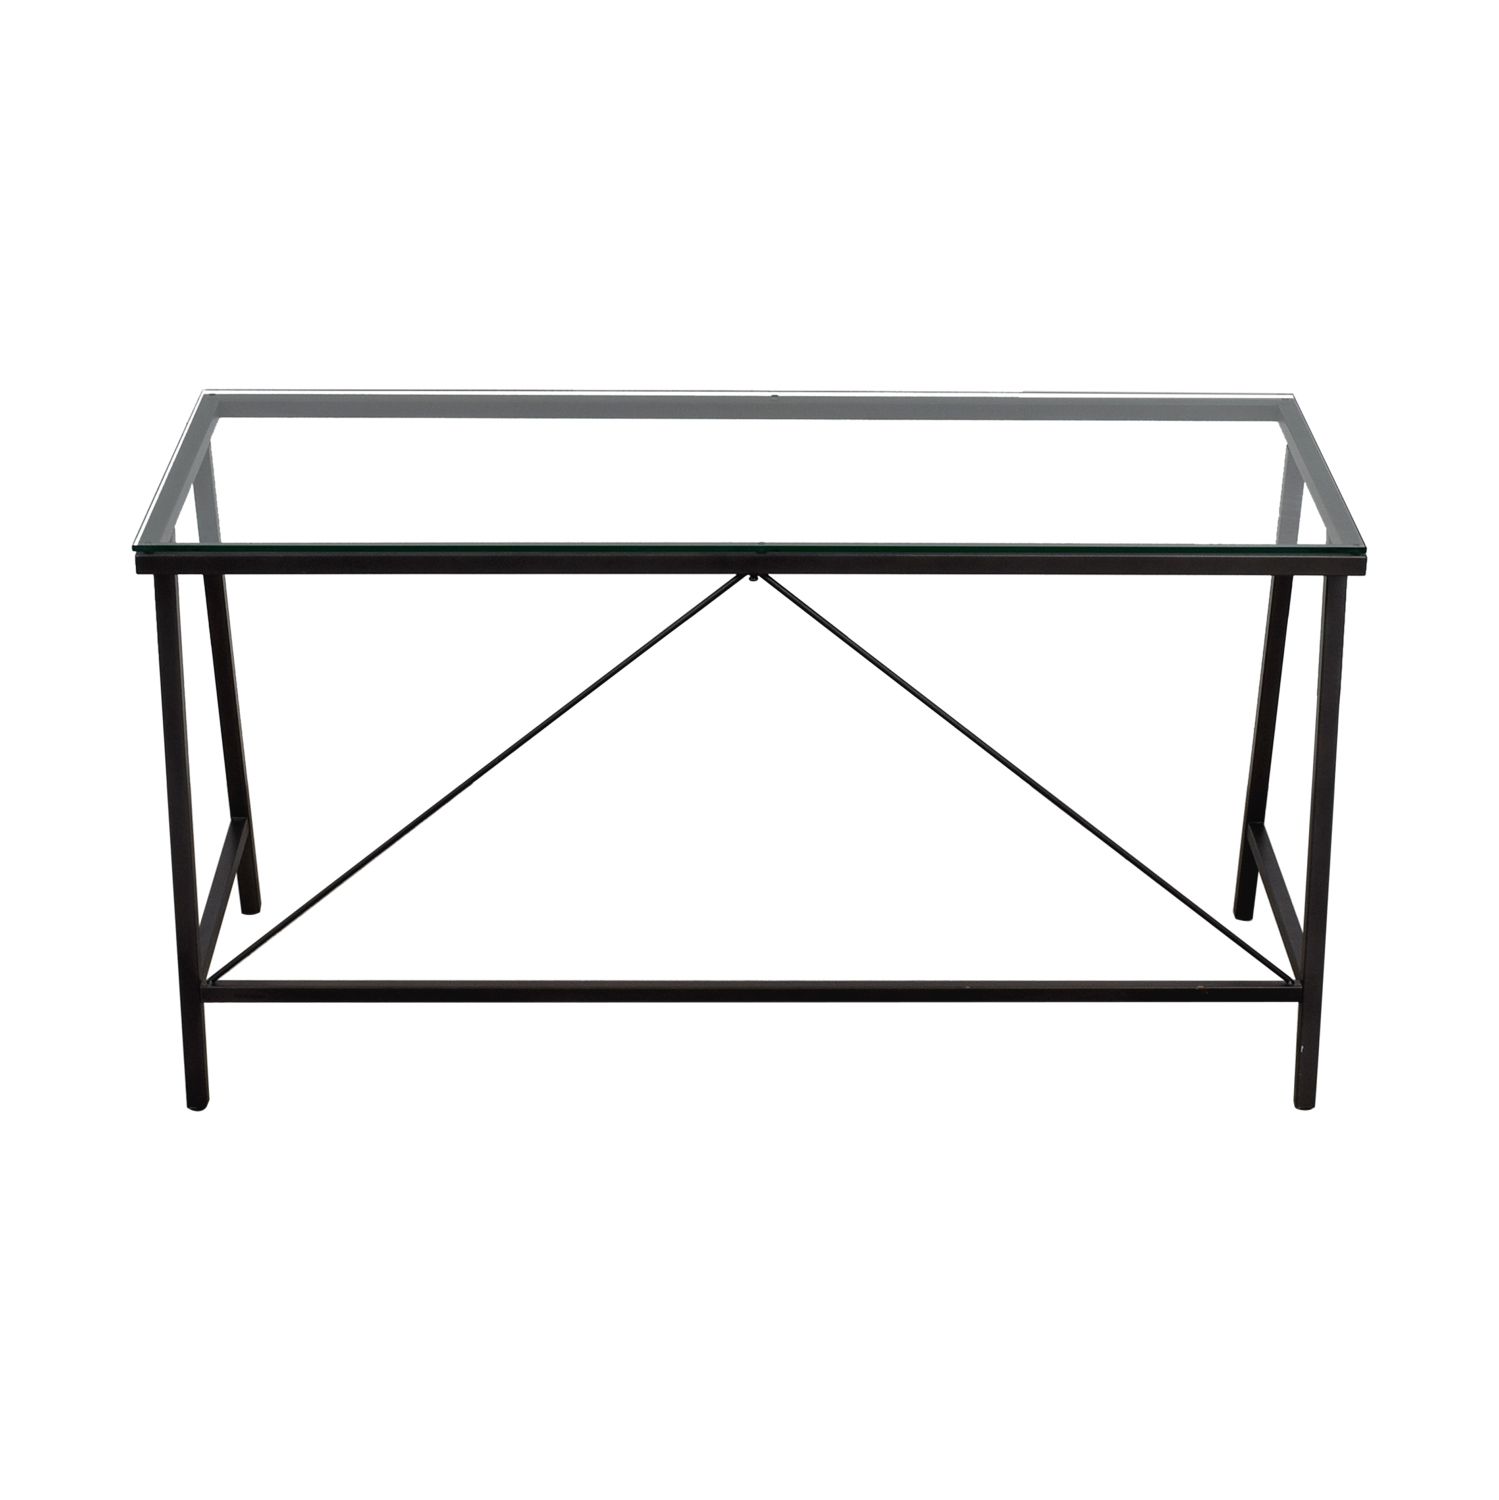 CB2 CB2 Carbon and Glass Desk discount